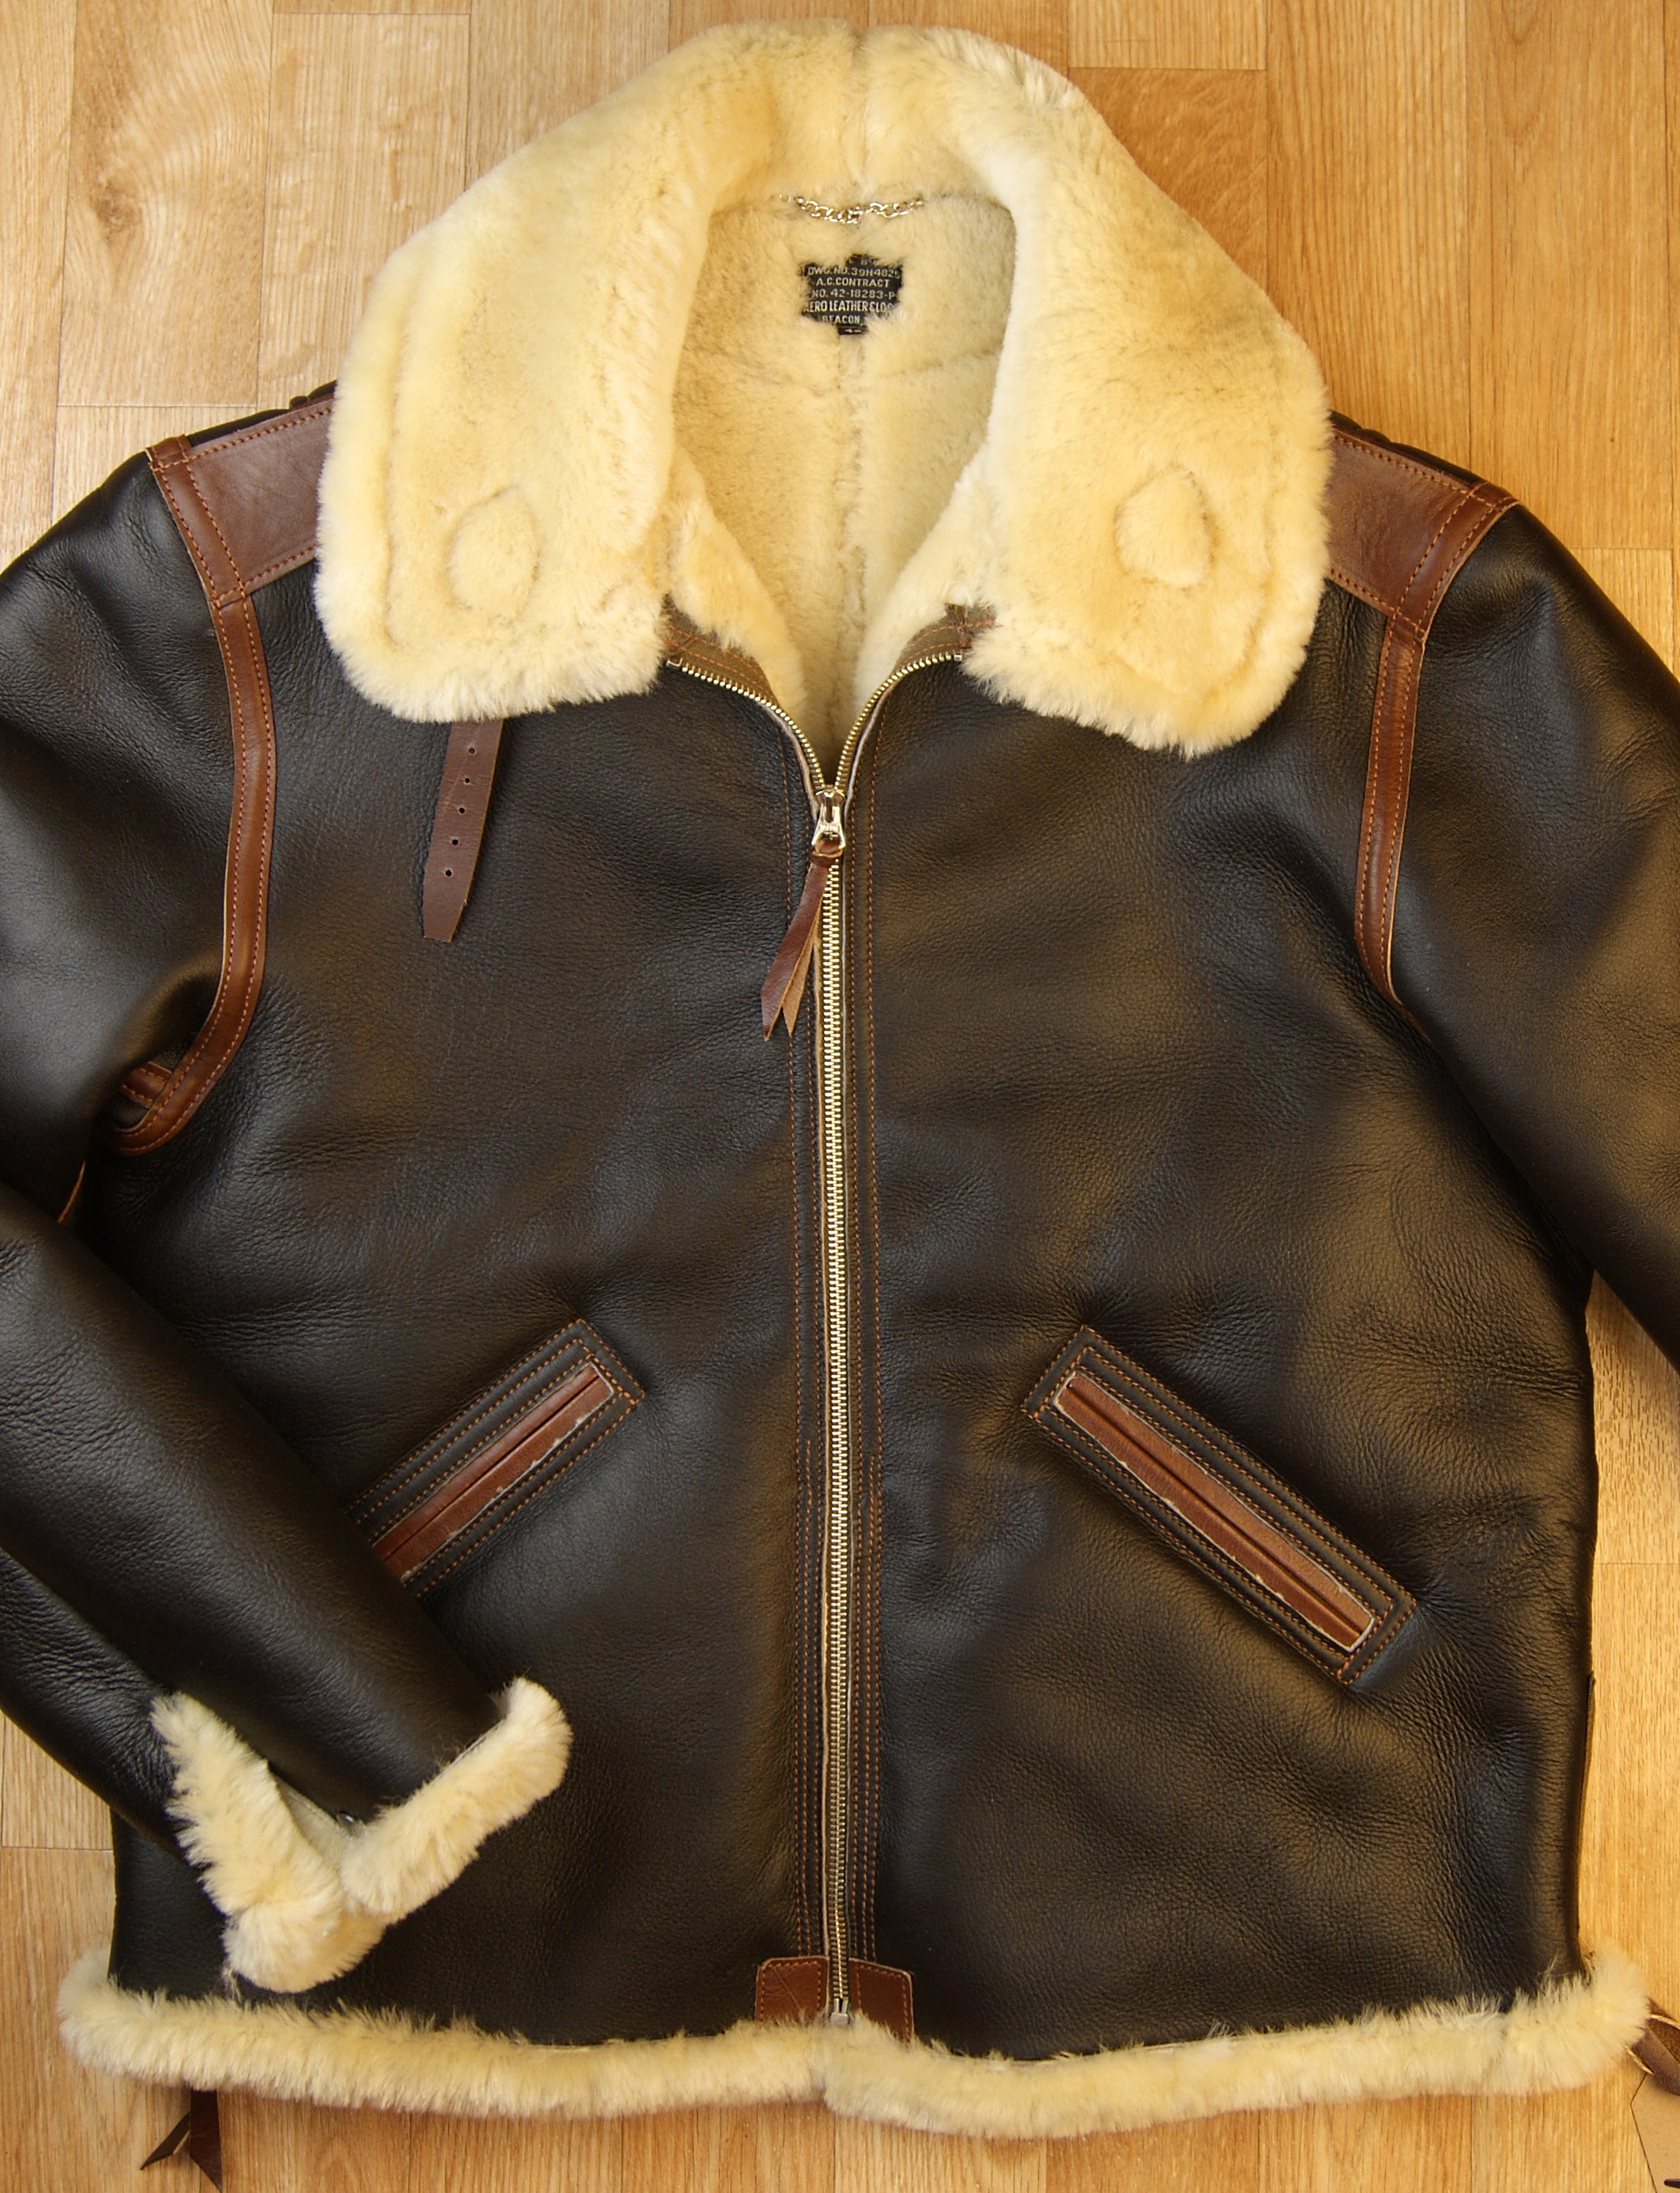 Aero Two-Tone B-6 Military Flight Jacket, size 46, Seal Brown with Russet Vicenza Horsehide Trim